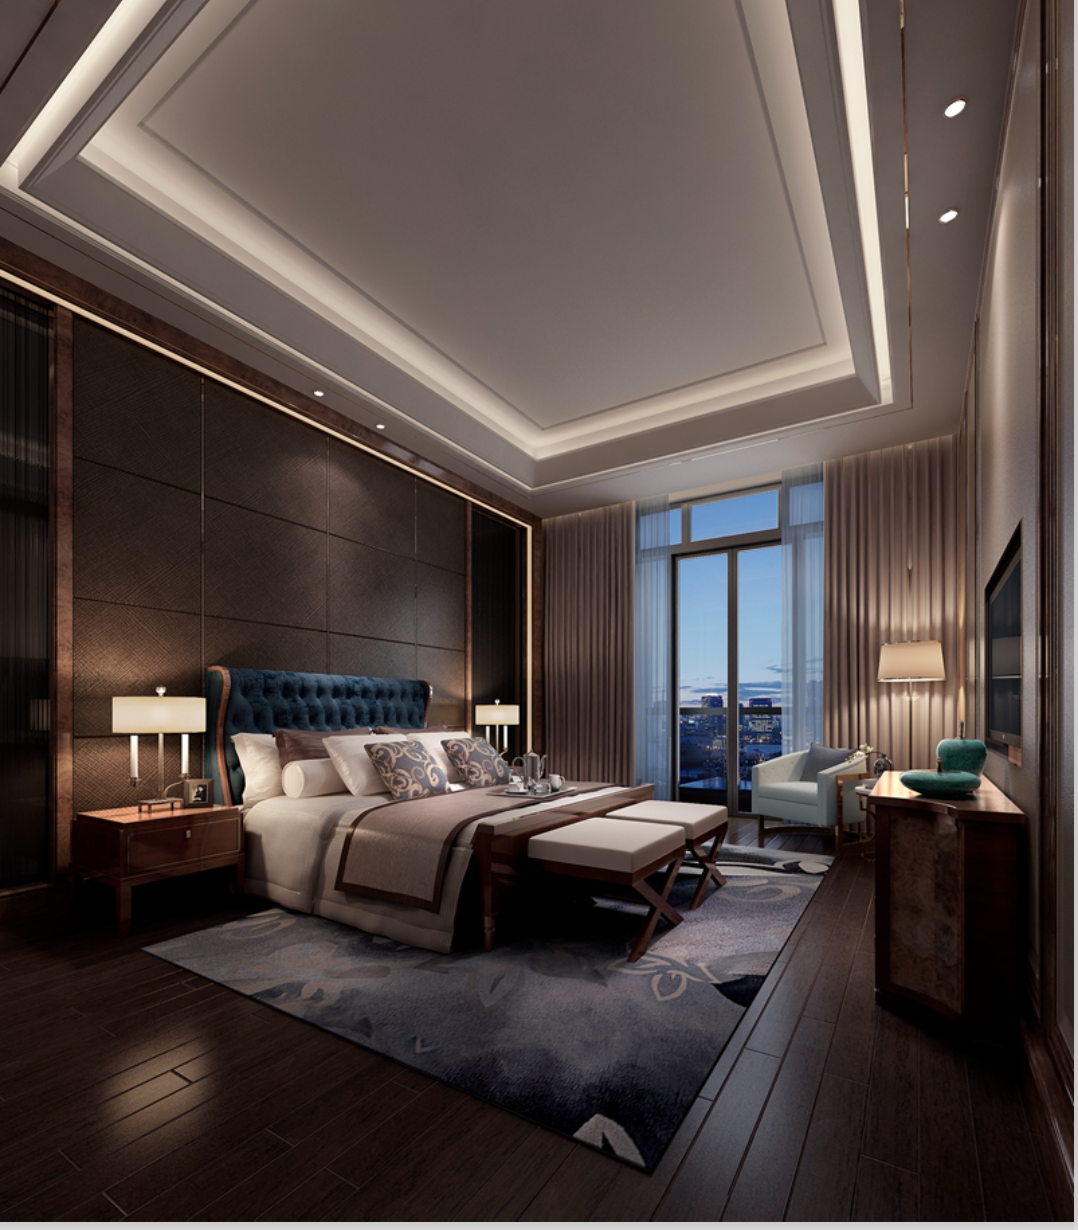 Ultra Modern Bedroom Interior Design Bedroom Colour Ideas 2014 Latest Bedroom Interior Design Trends Good Bedroom Colour Schemes: Romantic Bedroom. Ultra-luxurious